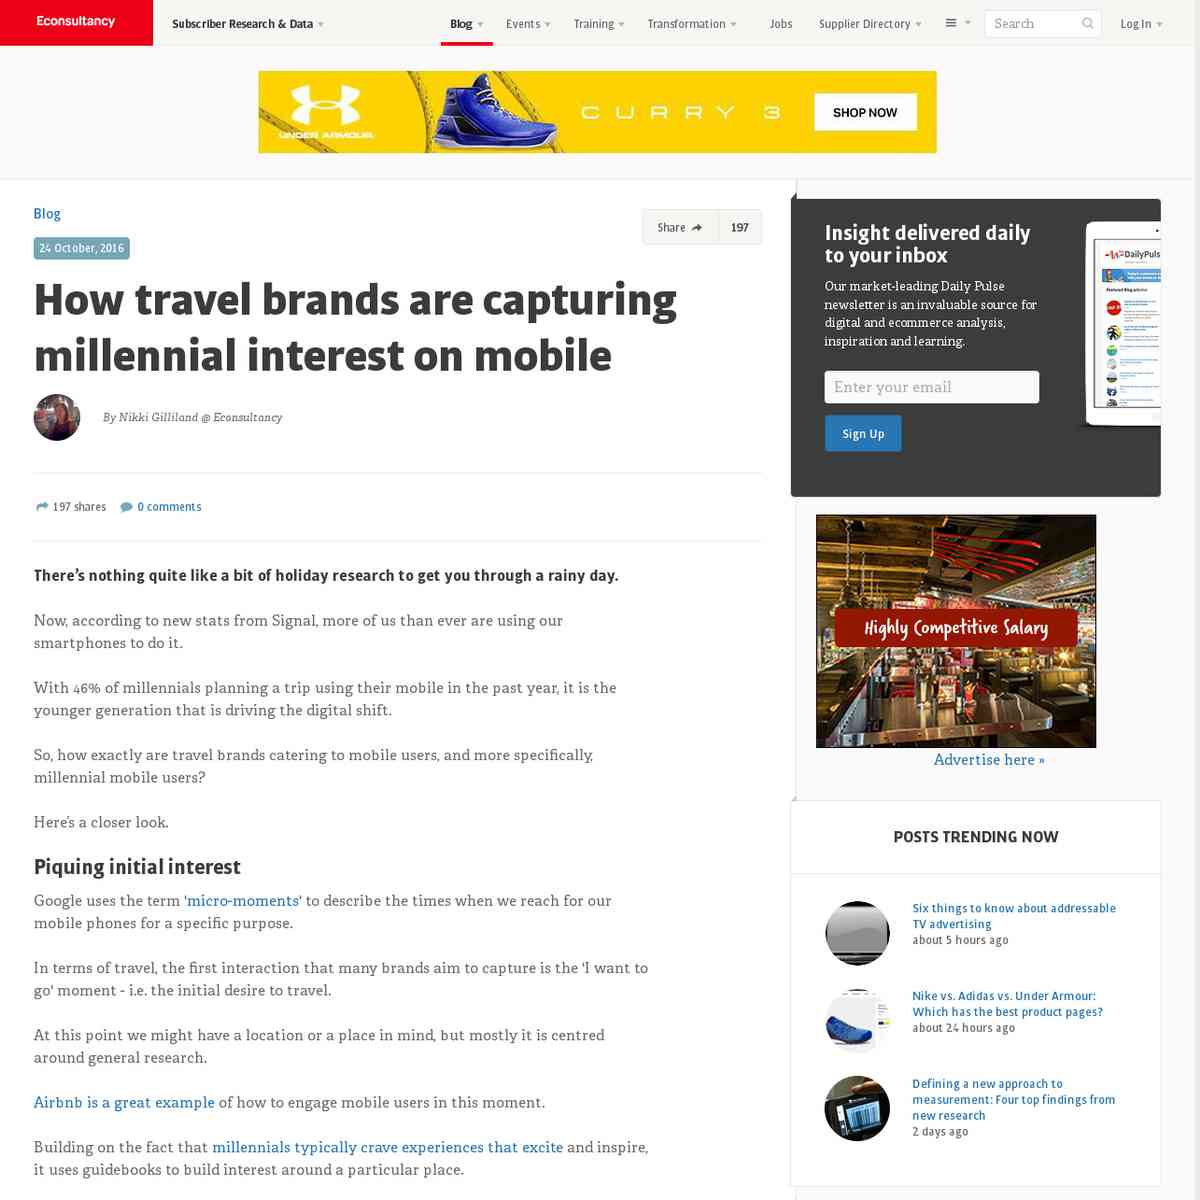 How travel brands are capturing millennial interest on mobile | Econsultancy